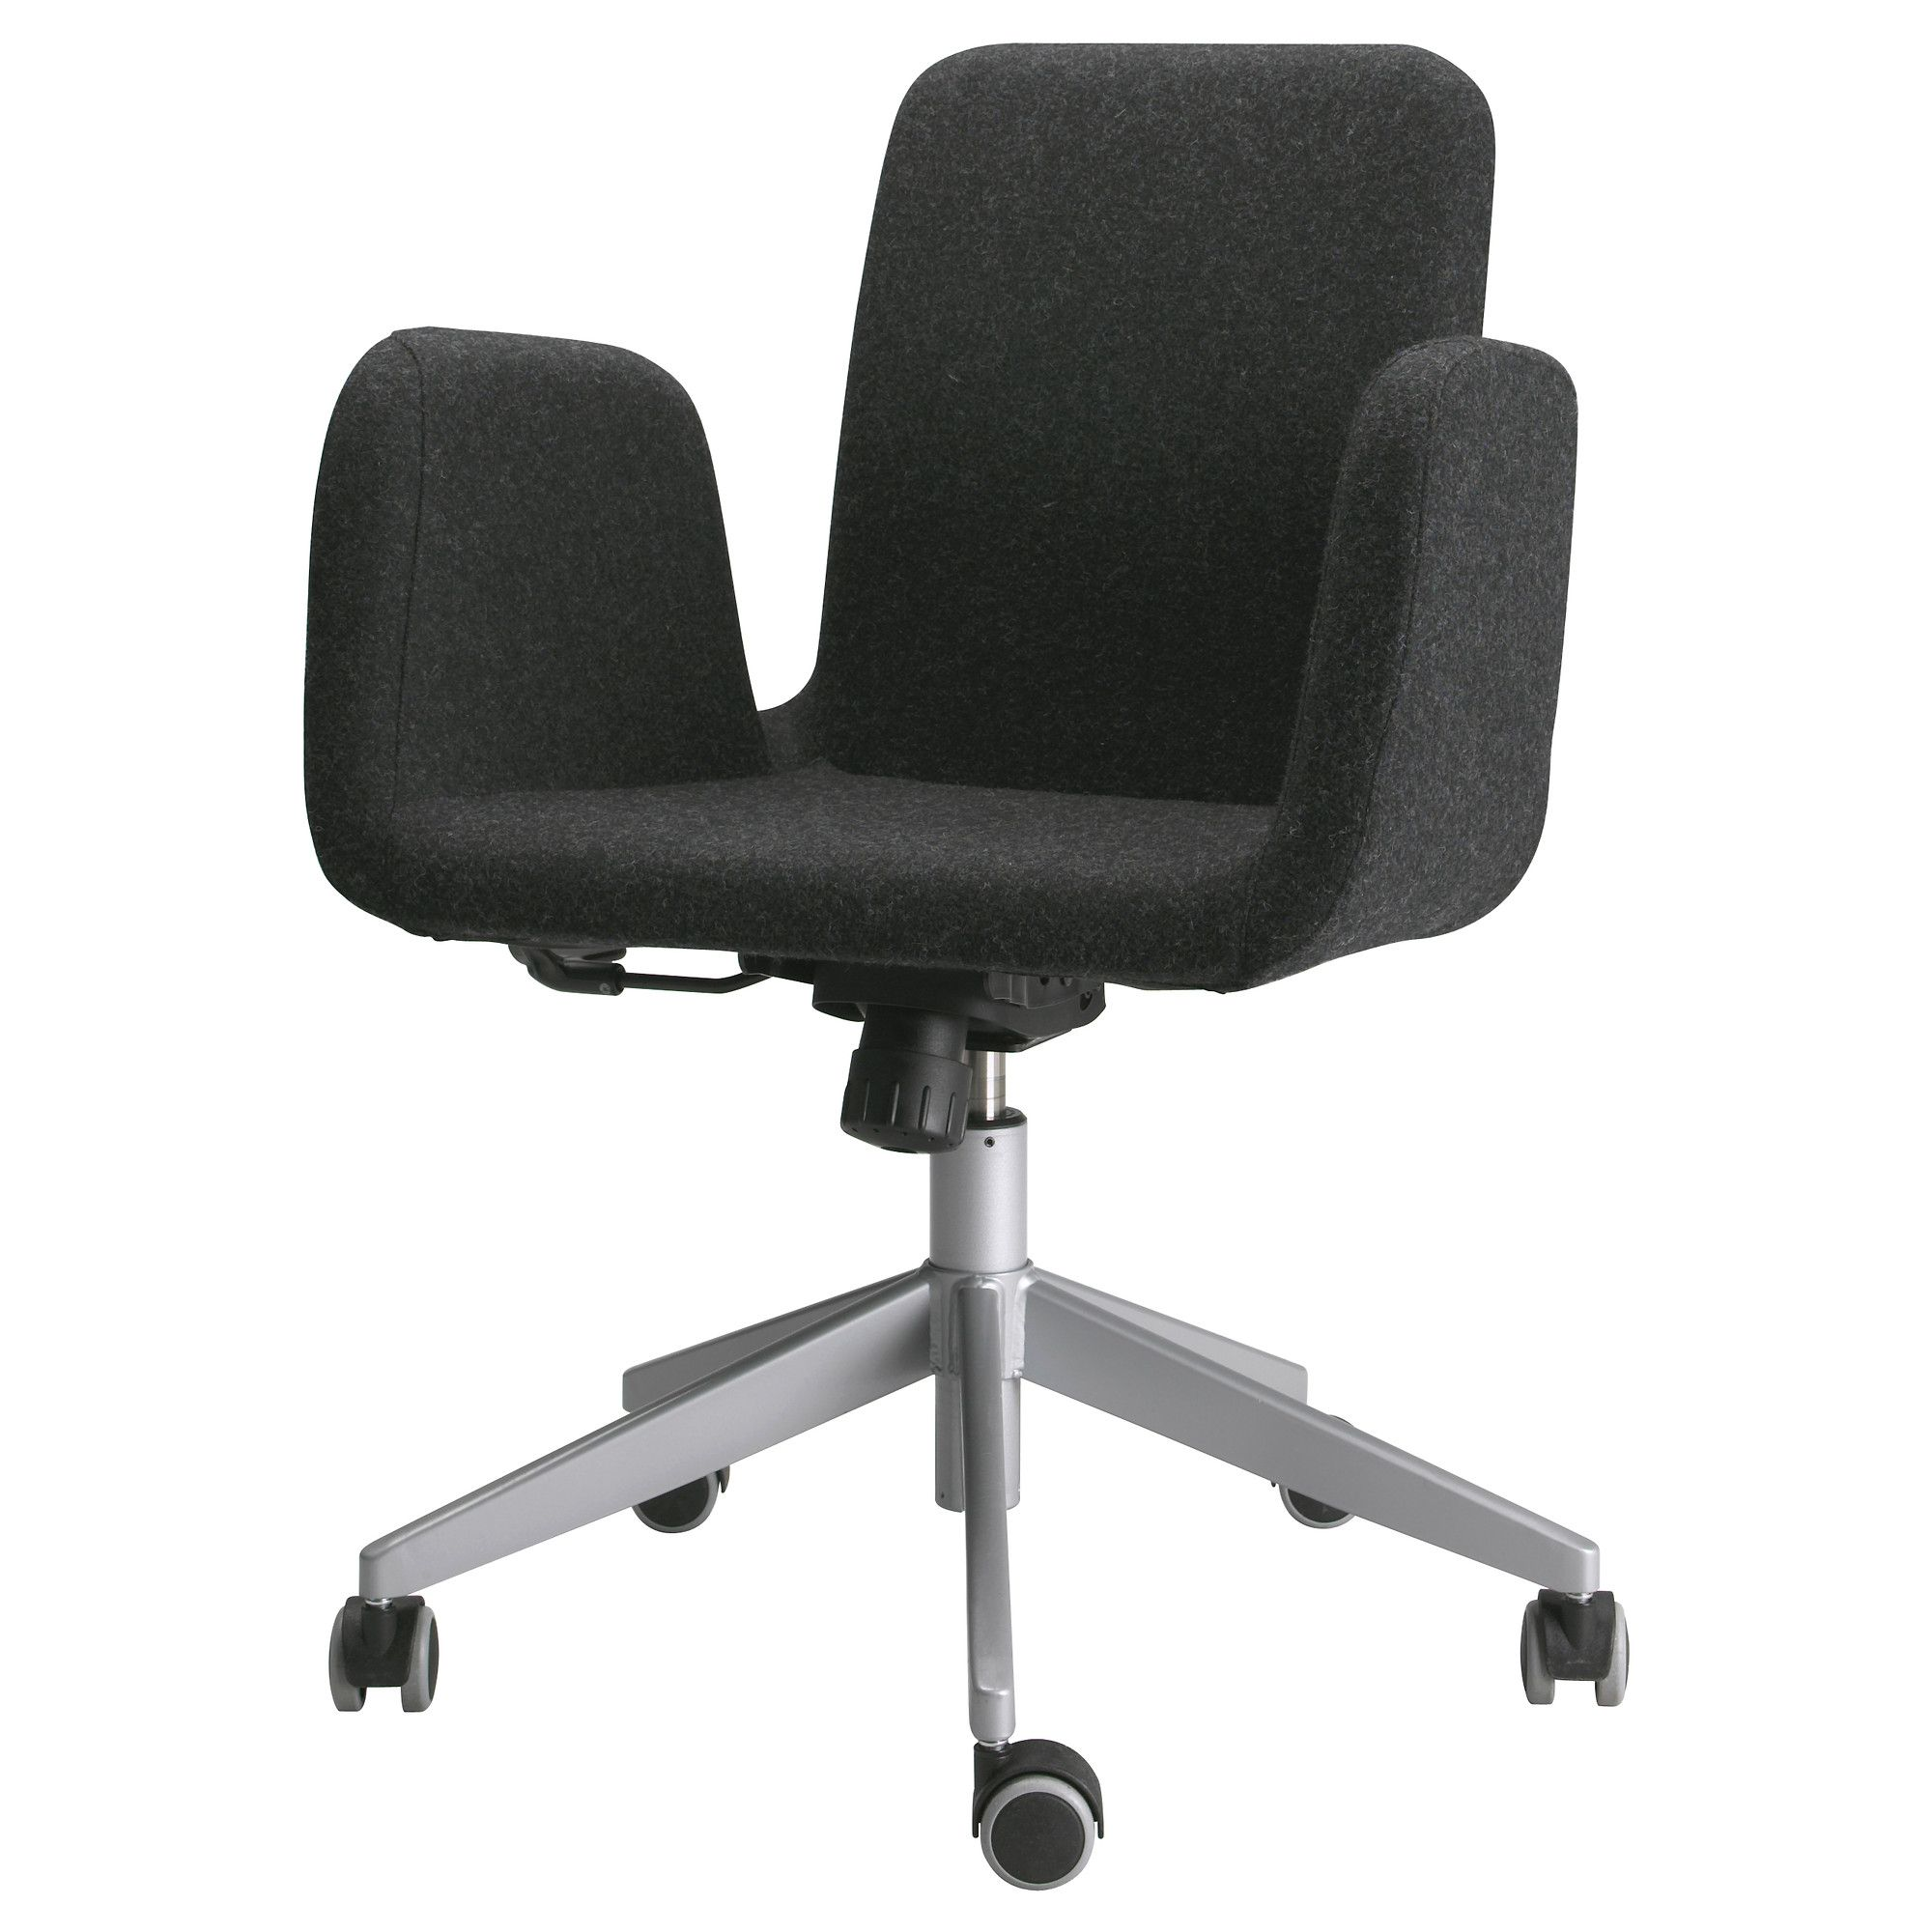 Furniture And Home Furnishings Ikea Office Chair Home Office